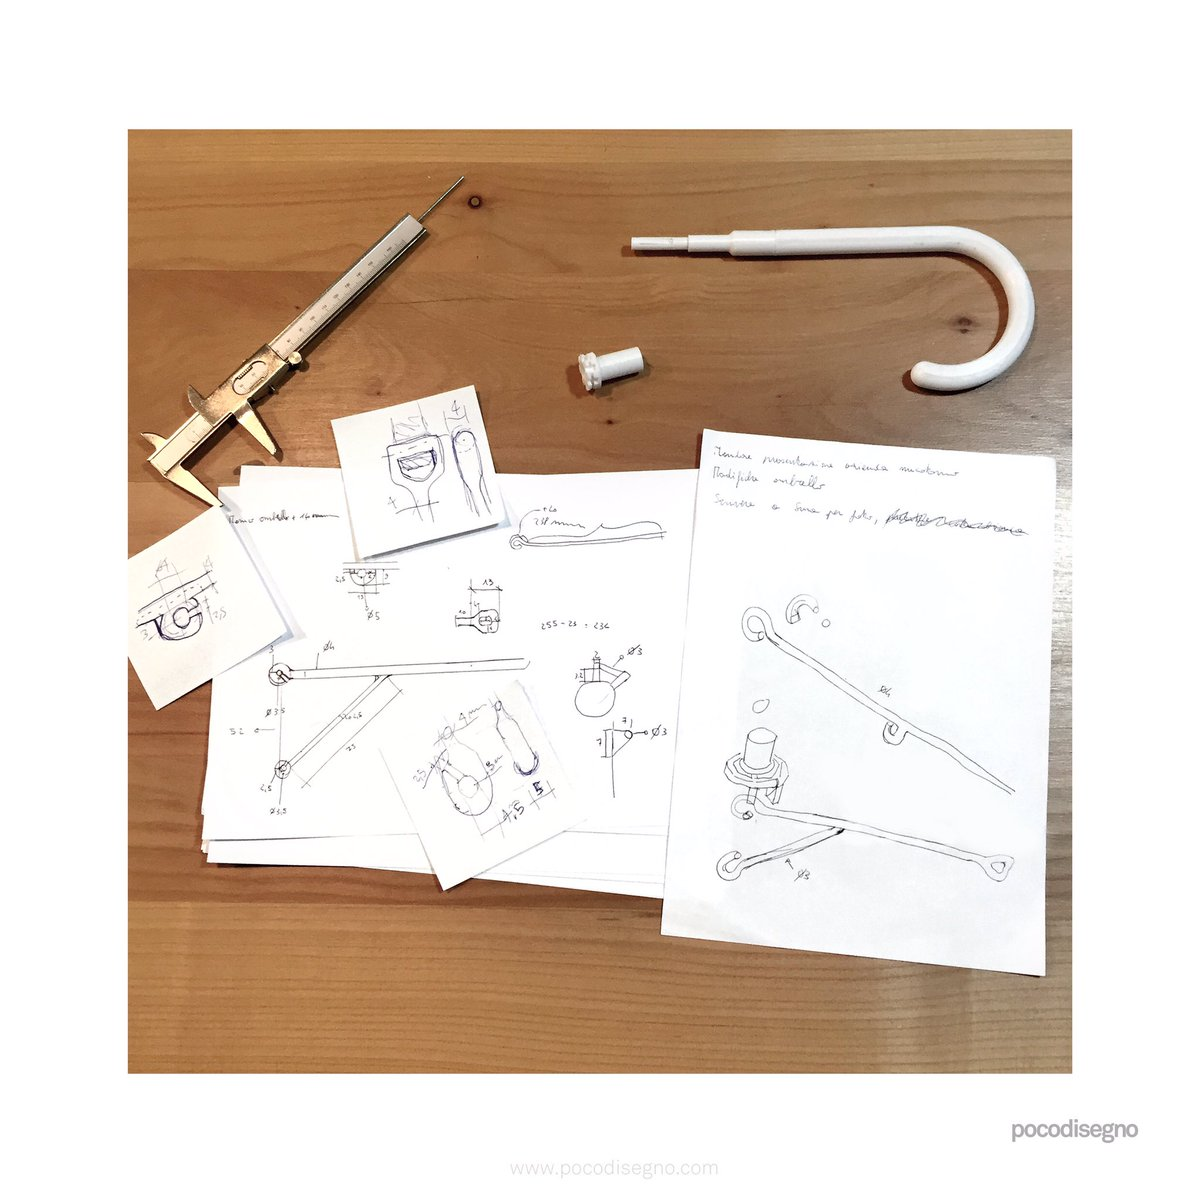 The immediacy of the drawings that are made to clear the ideas: they are not beautiful, but useful to understand the way to go. #design #industrialdesign #productdesign #sketching #3dprinting